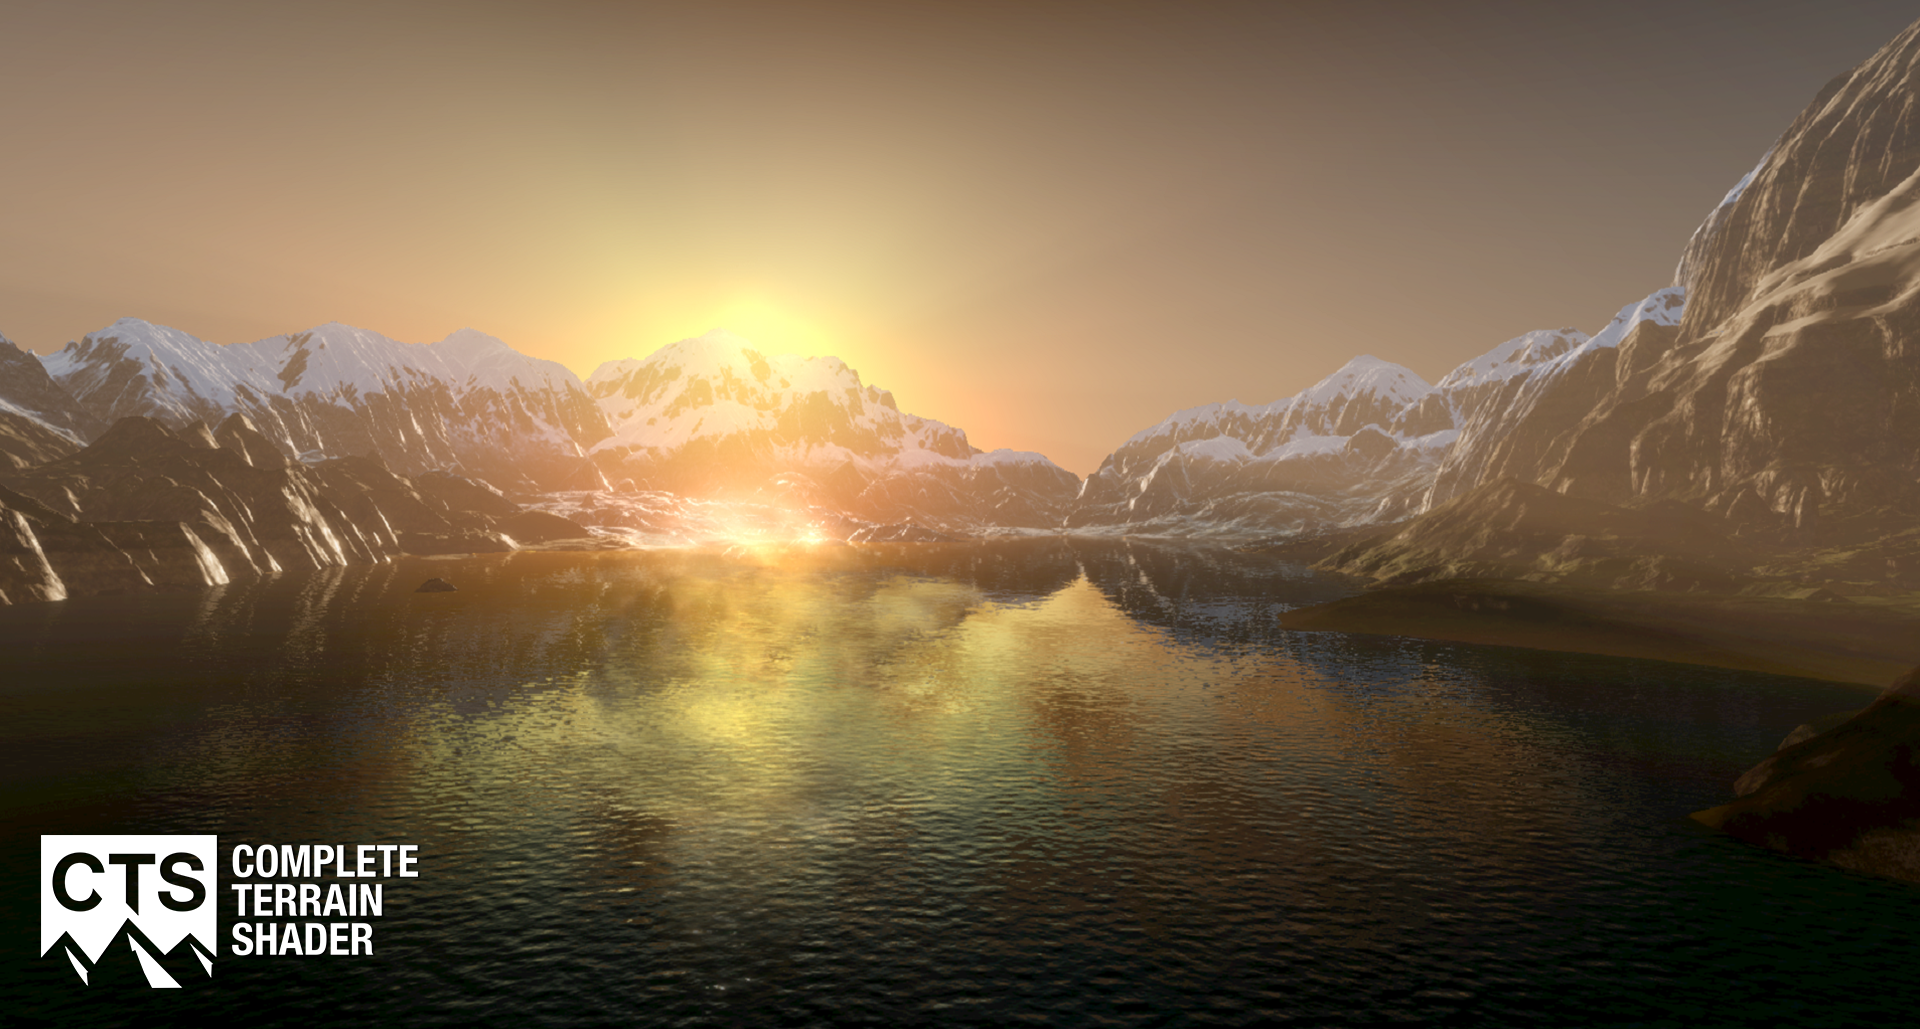 CTS - Complete Terrain Shader